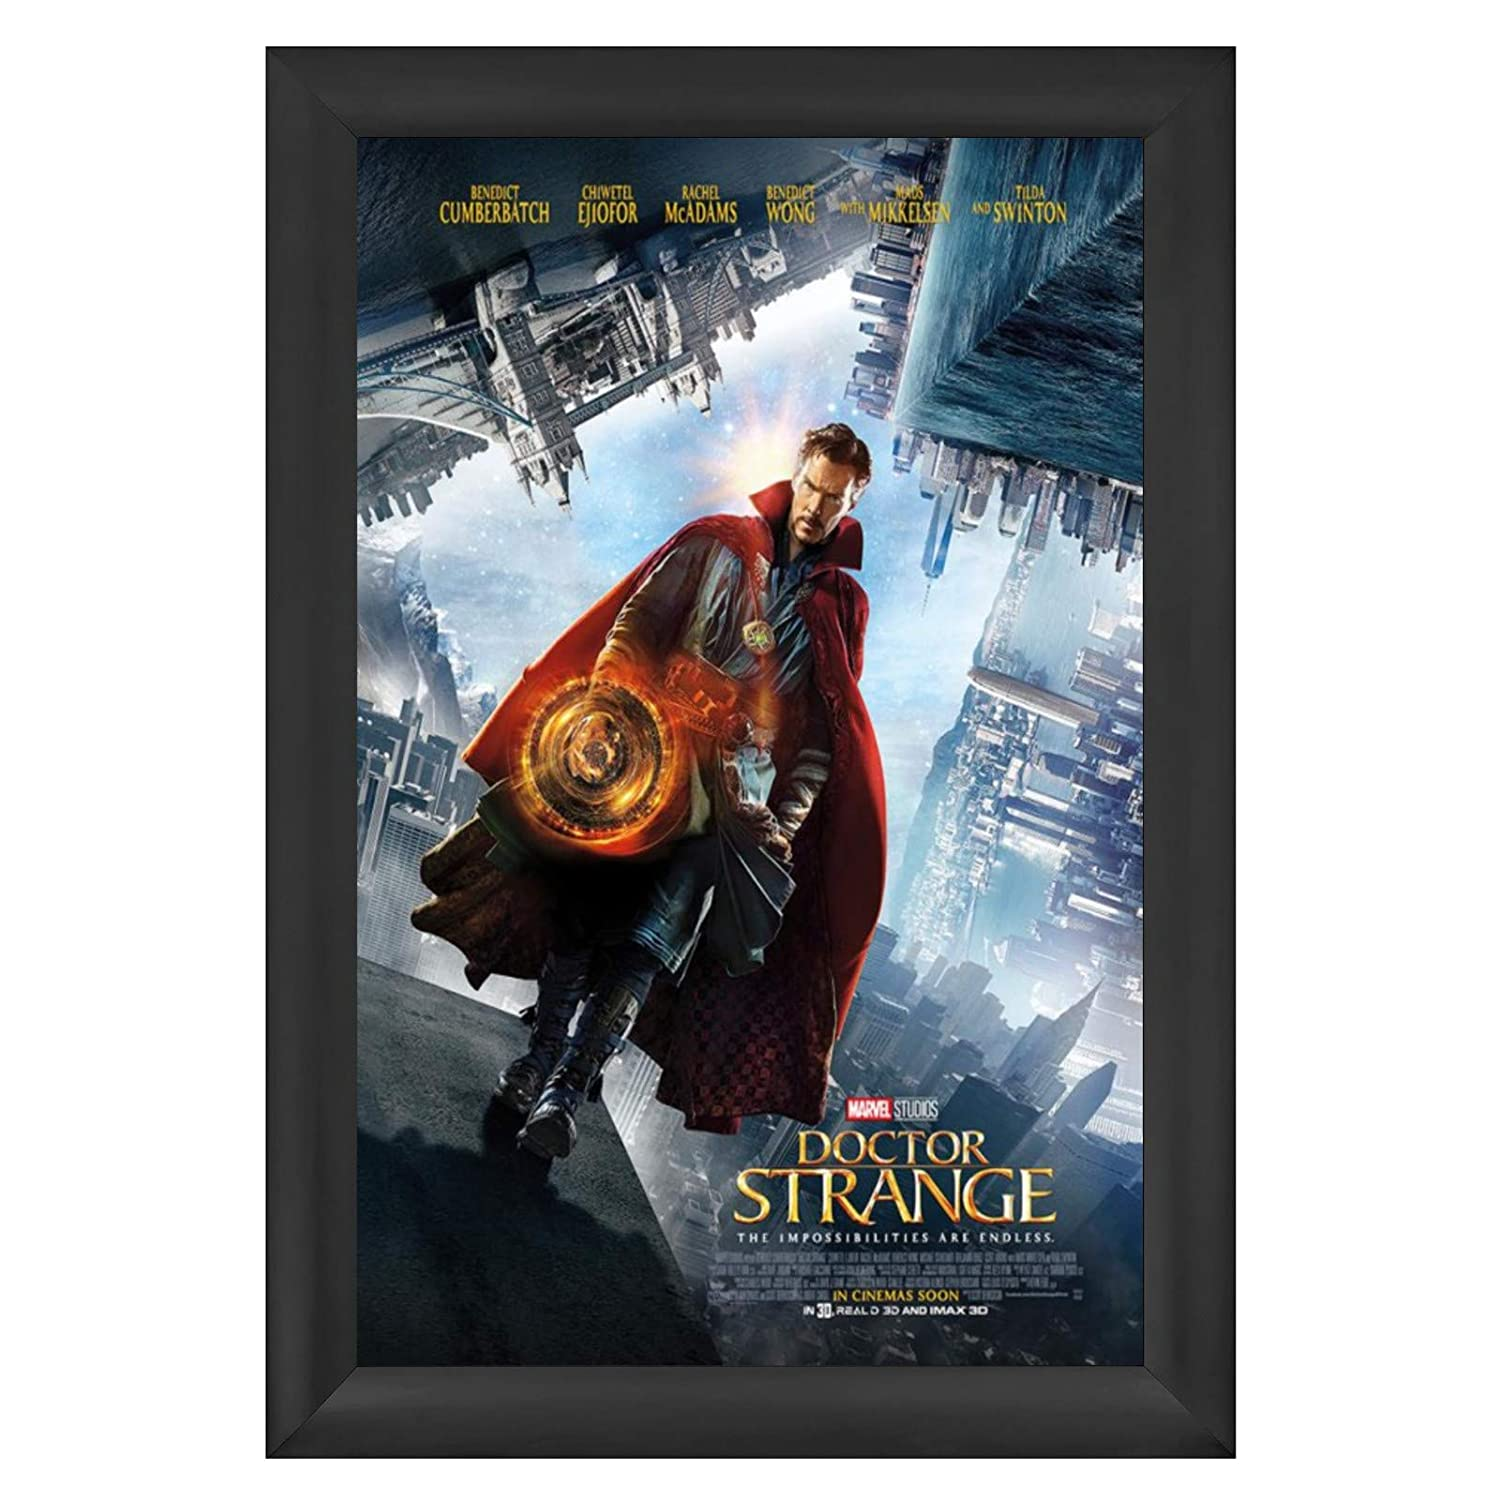 """SnapeZo Movie Poster Frame 27x40 Inches, Black 2.2"""" Aluminum Profile, Front-Loading Snap Frame, Wall Mounting, Super-Wide Series for One Sheet Movie Posters"""